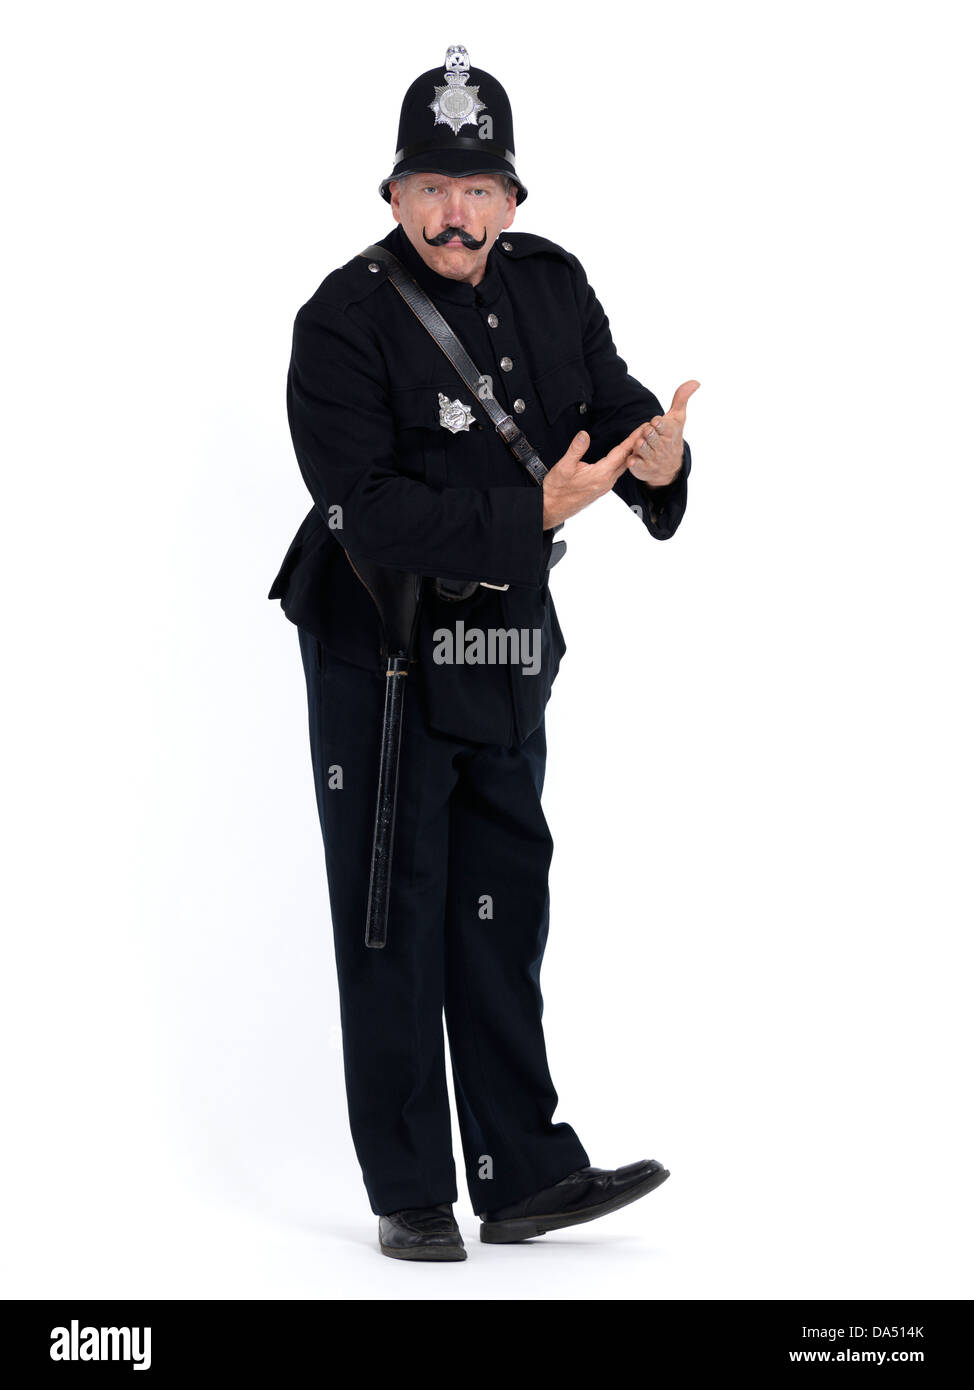 Vintage police officer with serious expression demanding a proof or documents, humorous conceptual portrait isolated - Stock Image